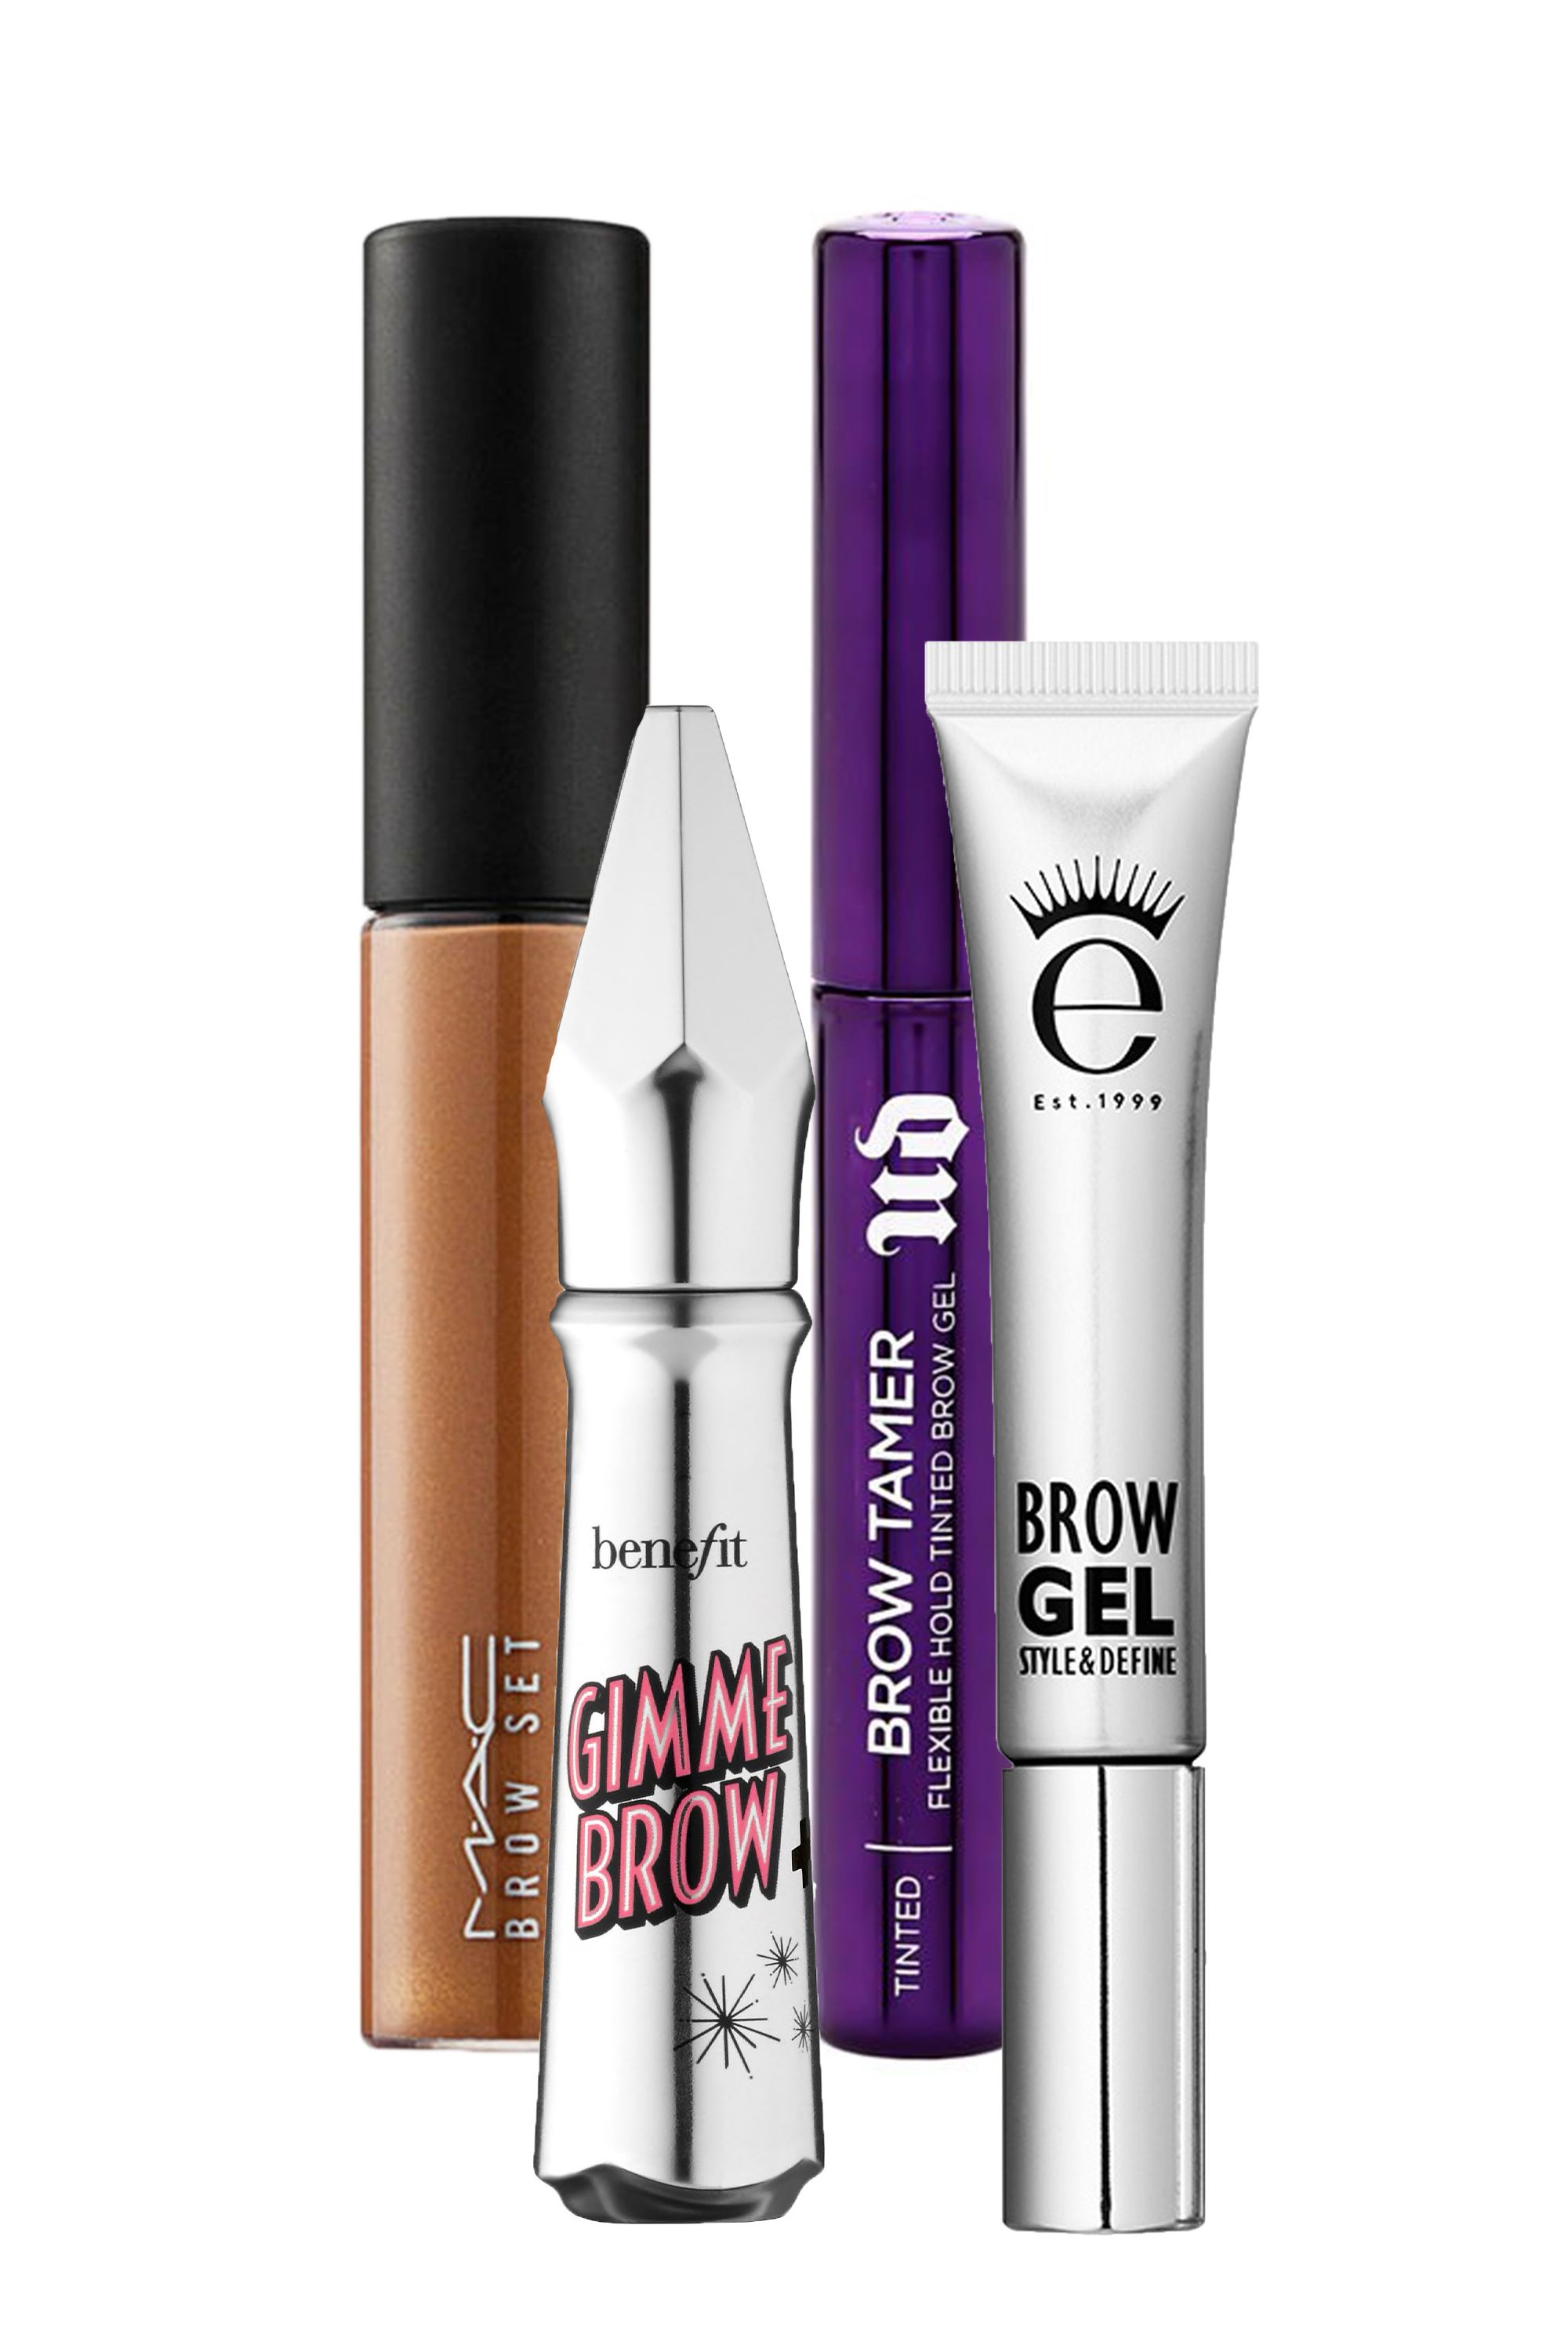 48cbce7a7bdc Best Eyebrow Makeup Products - 32 Eyebrow Pencils, Gels, Waxes, and ...